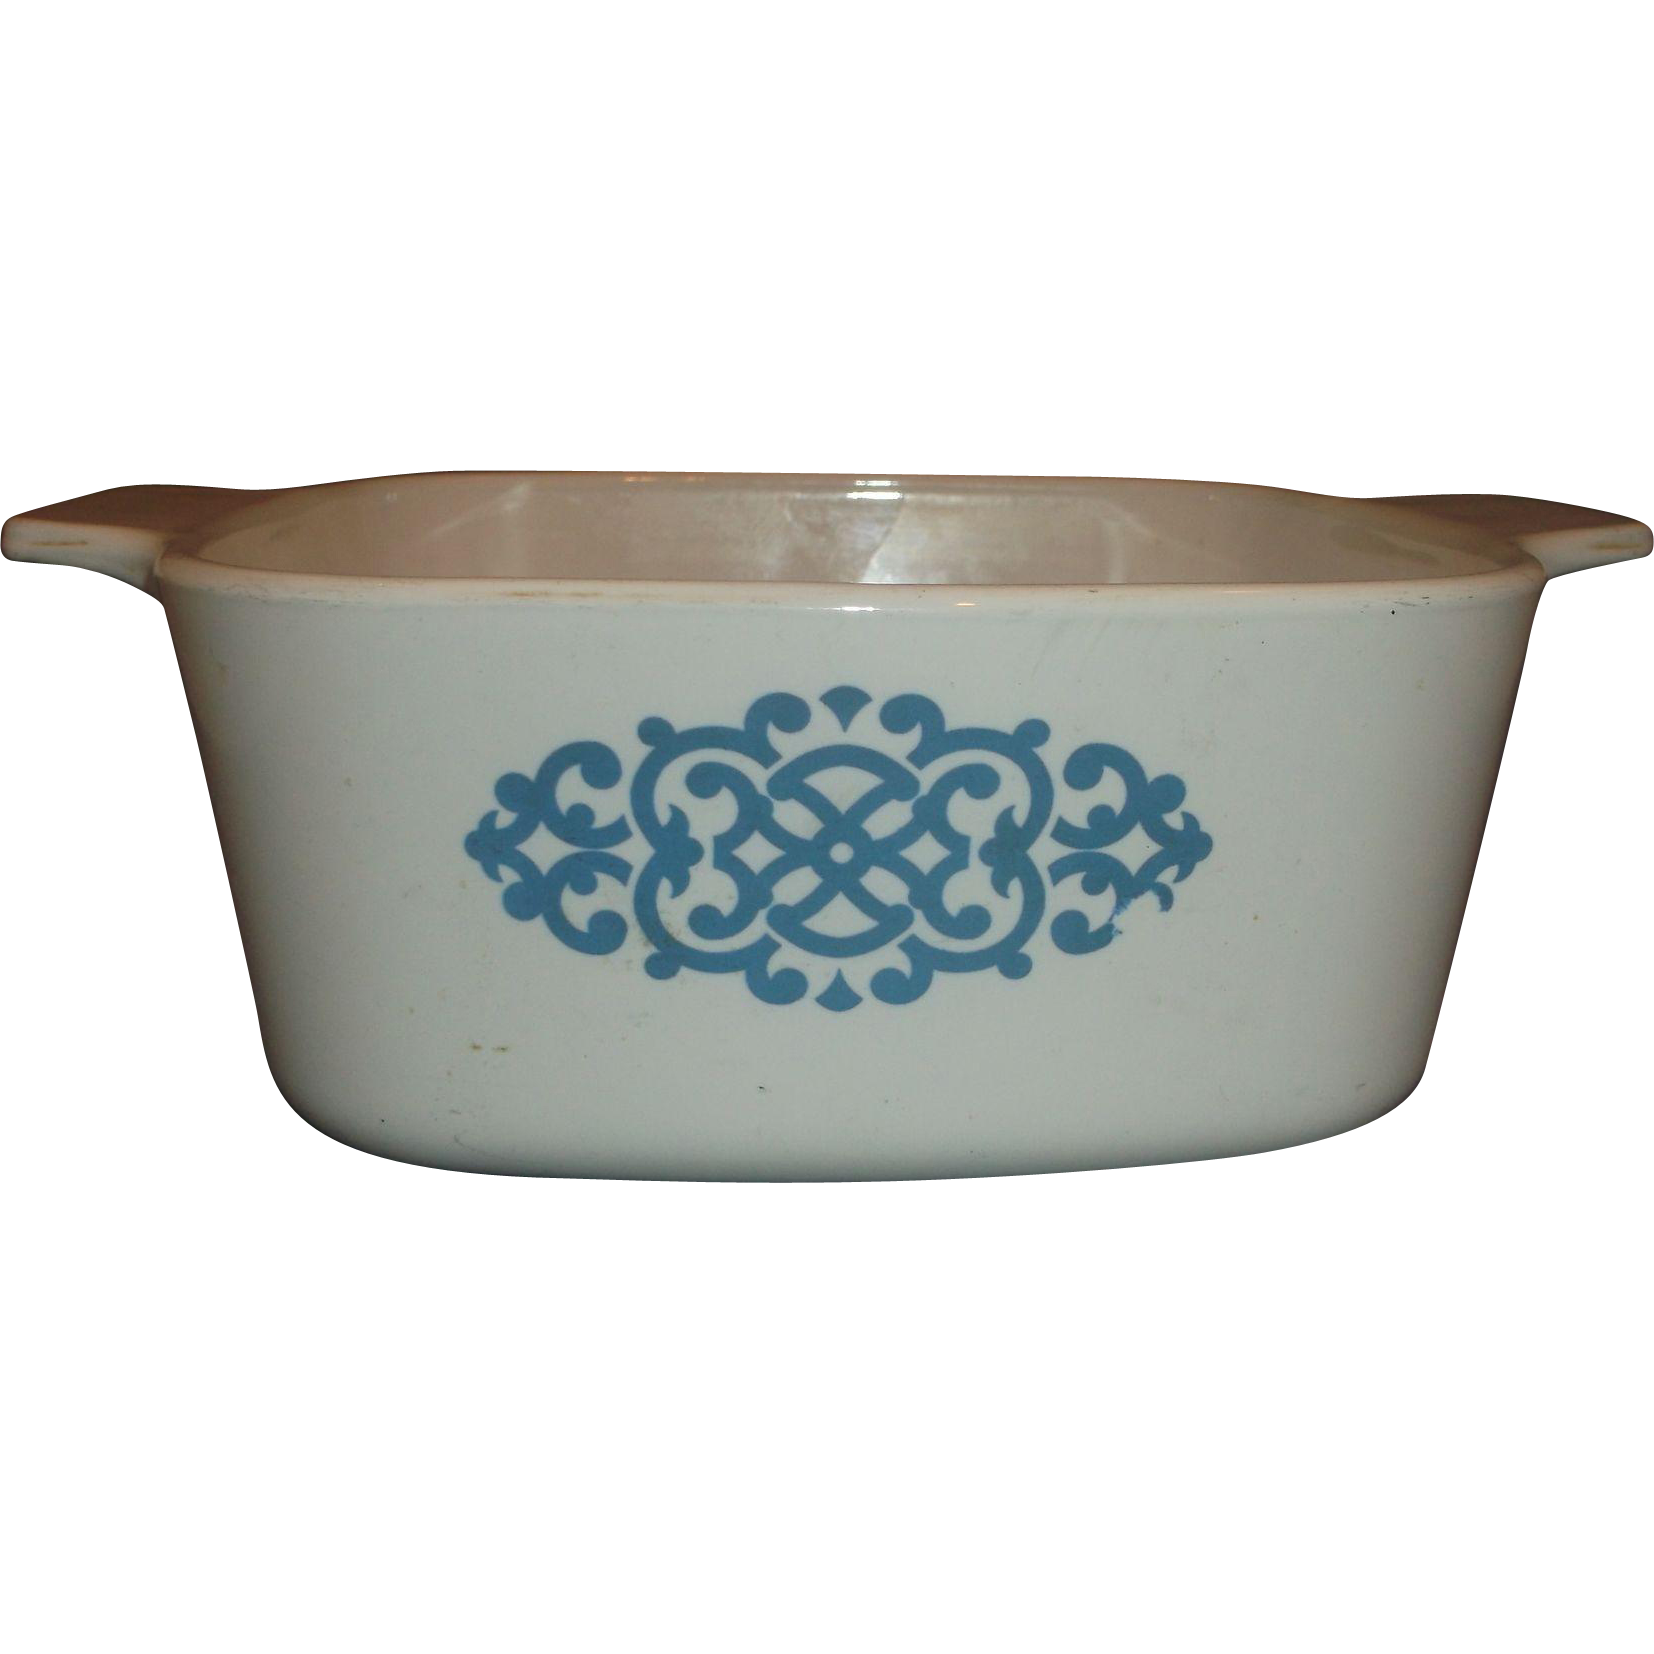 Corning Ware Shell Oil Blue Medallion 1 1/2 QT Casserole Dish Promotional Advertising